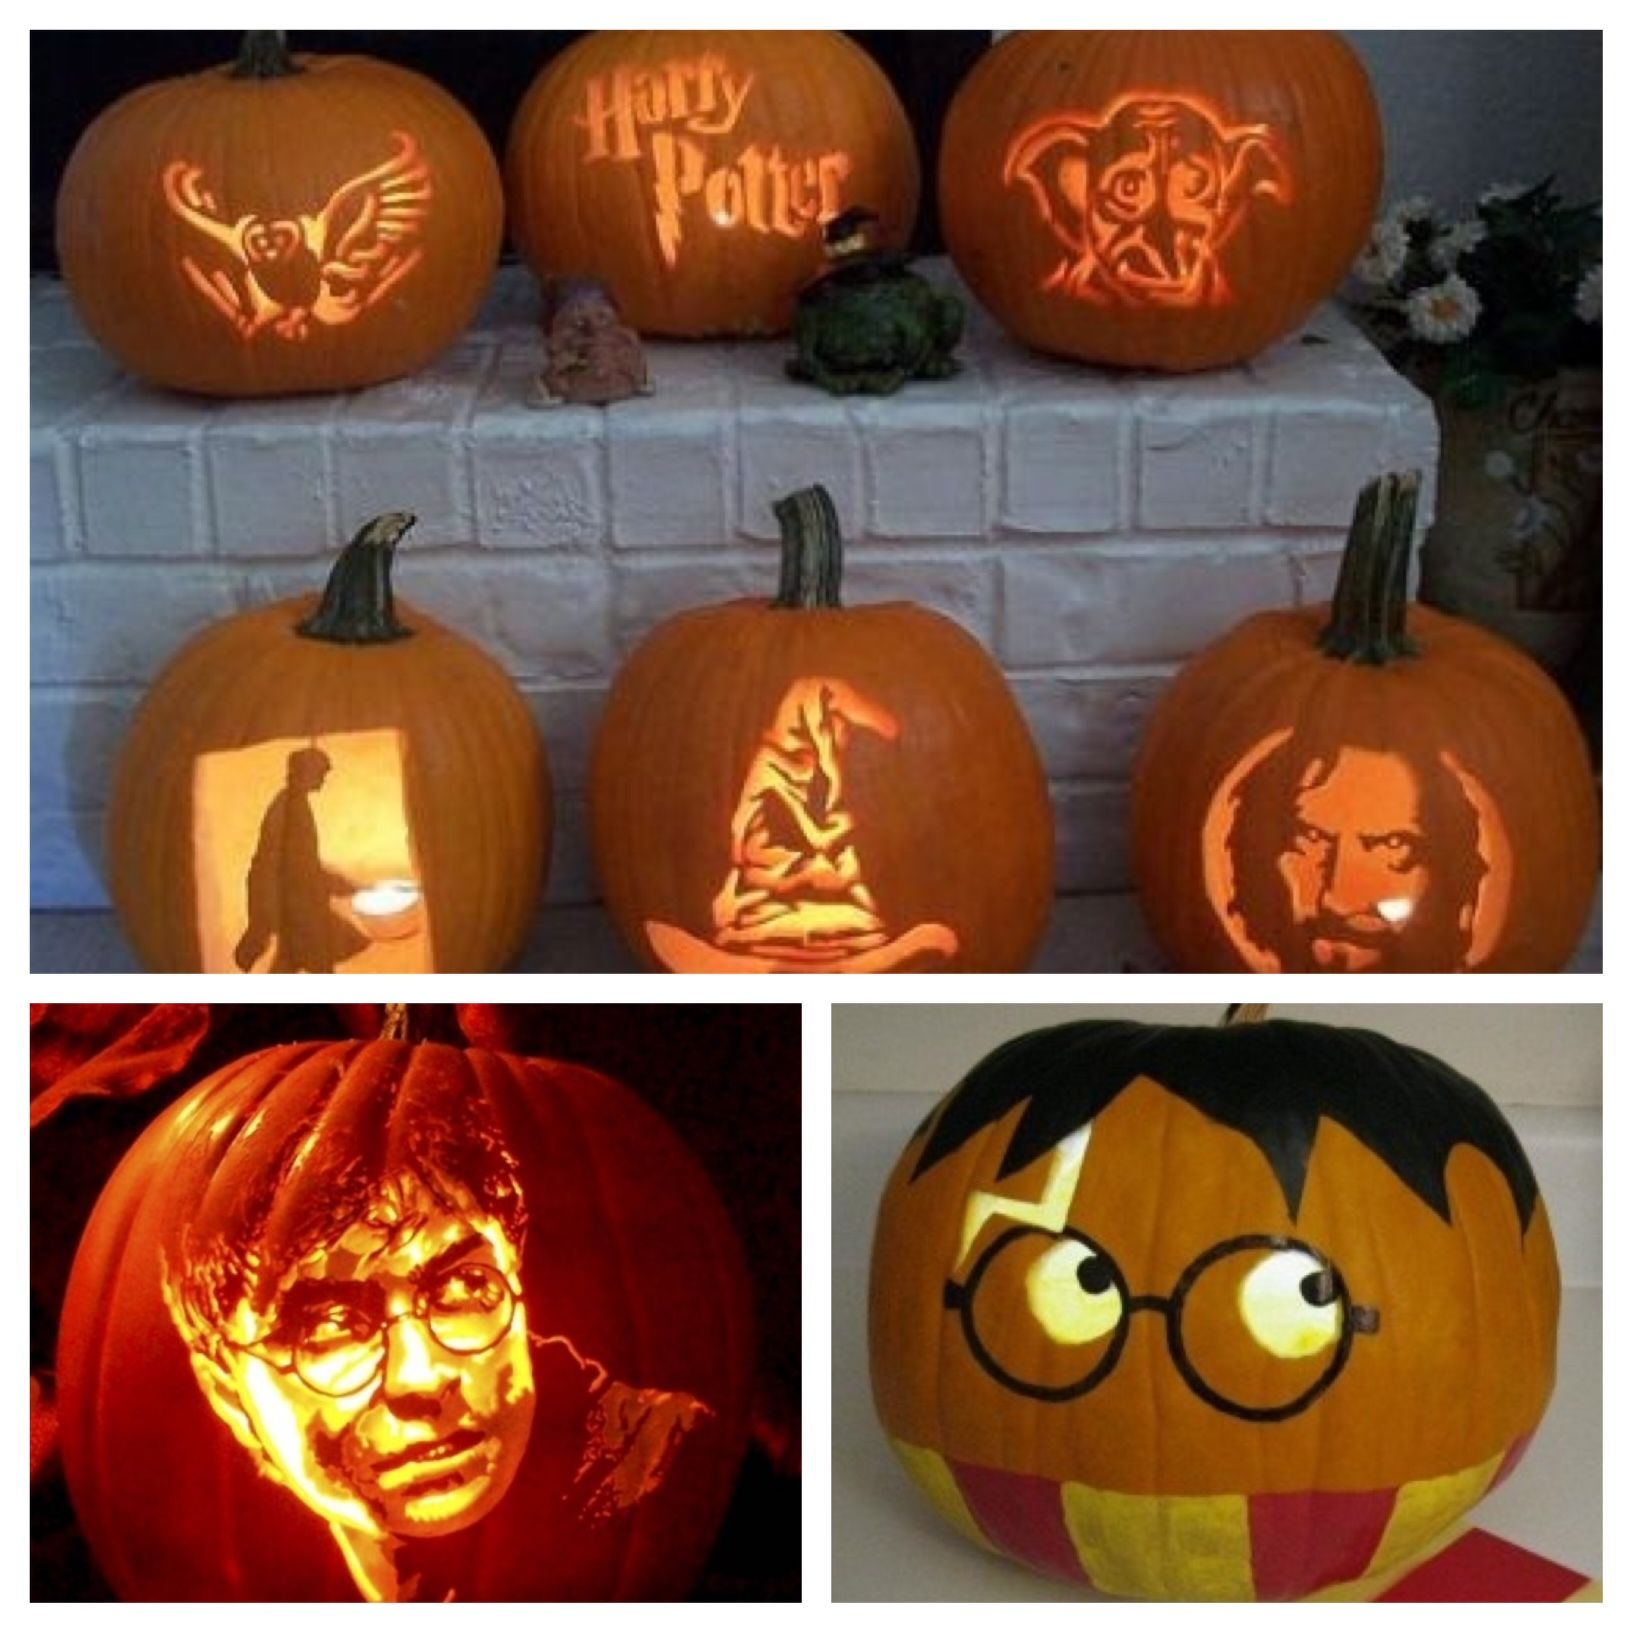 Love These Harry Potter Pumpkins